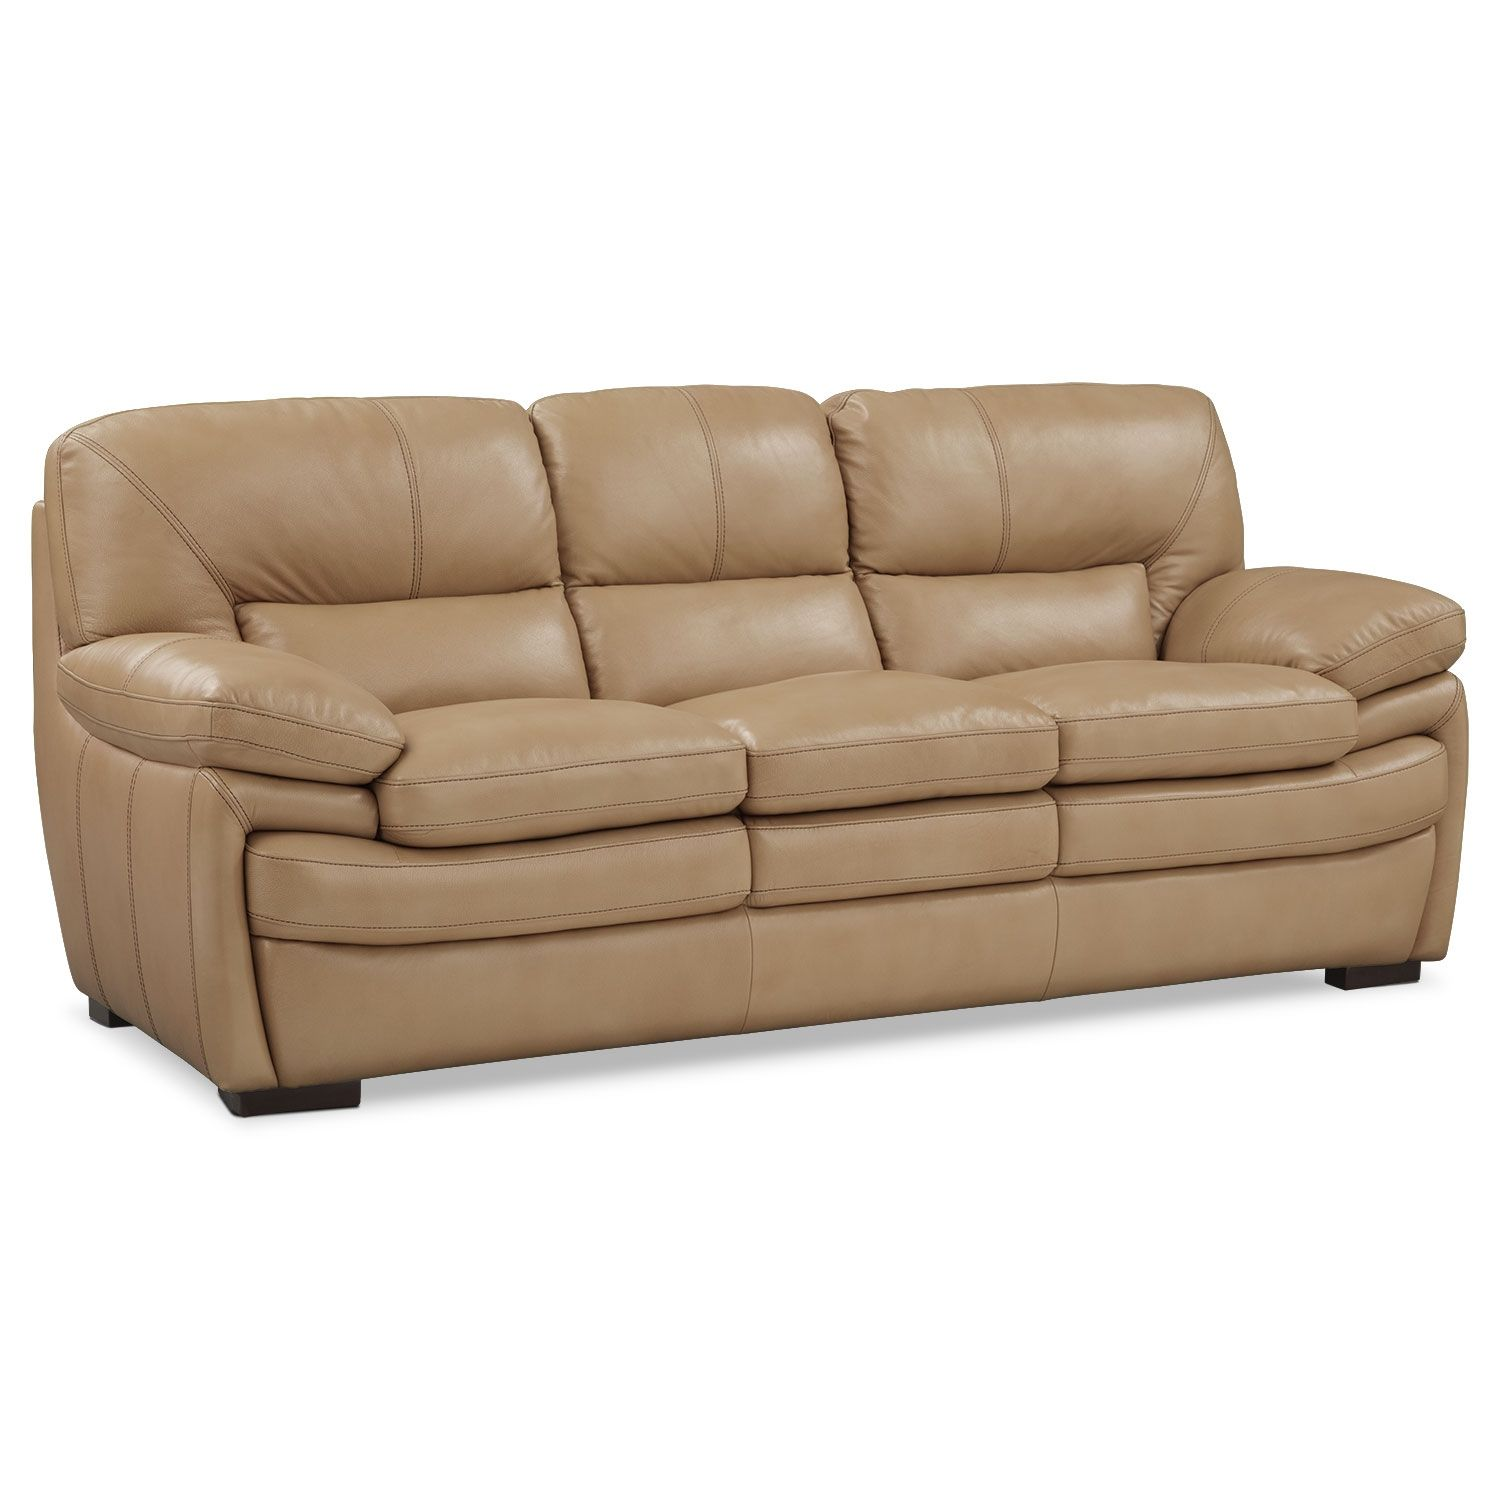 American Signature Furniture Com: Living Room Furniture - Peyton Taupe Sofa